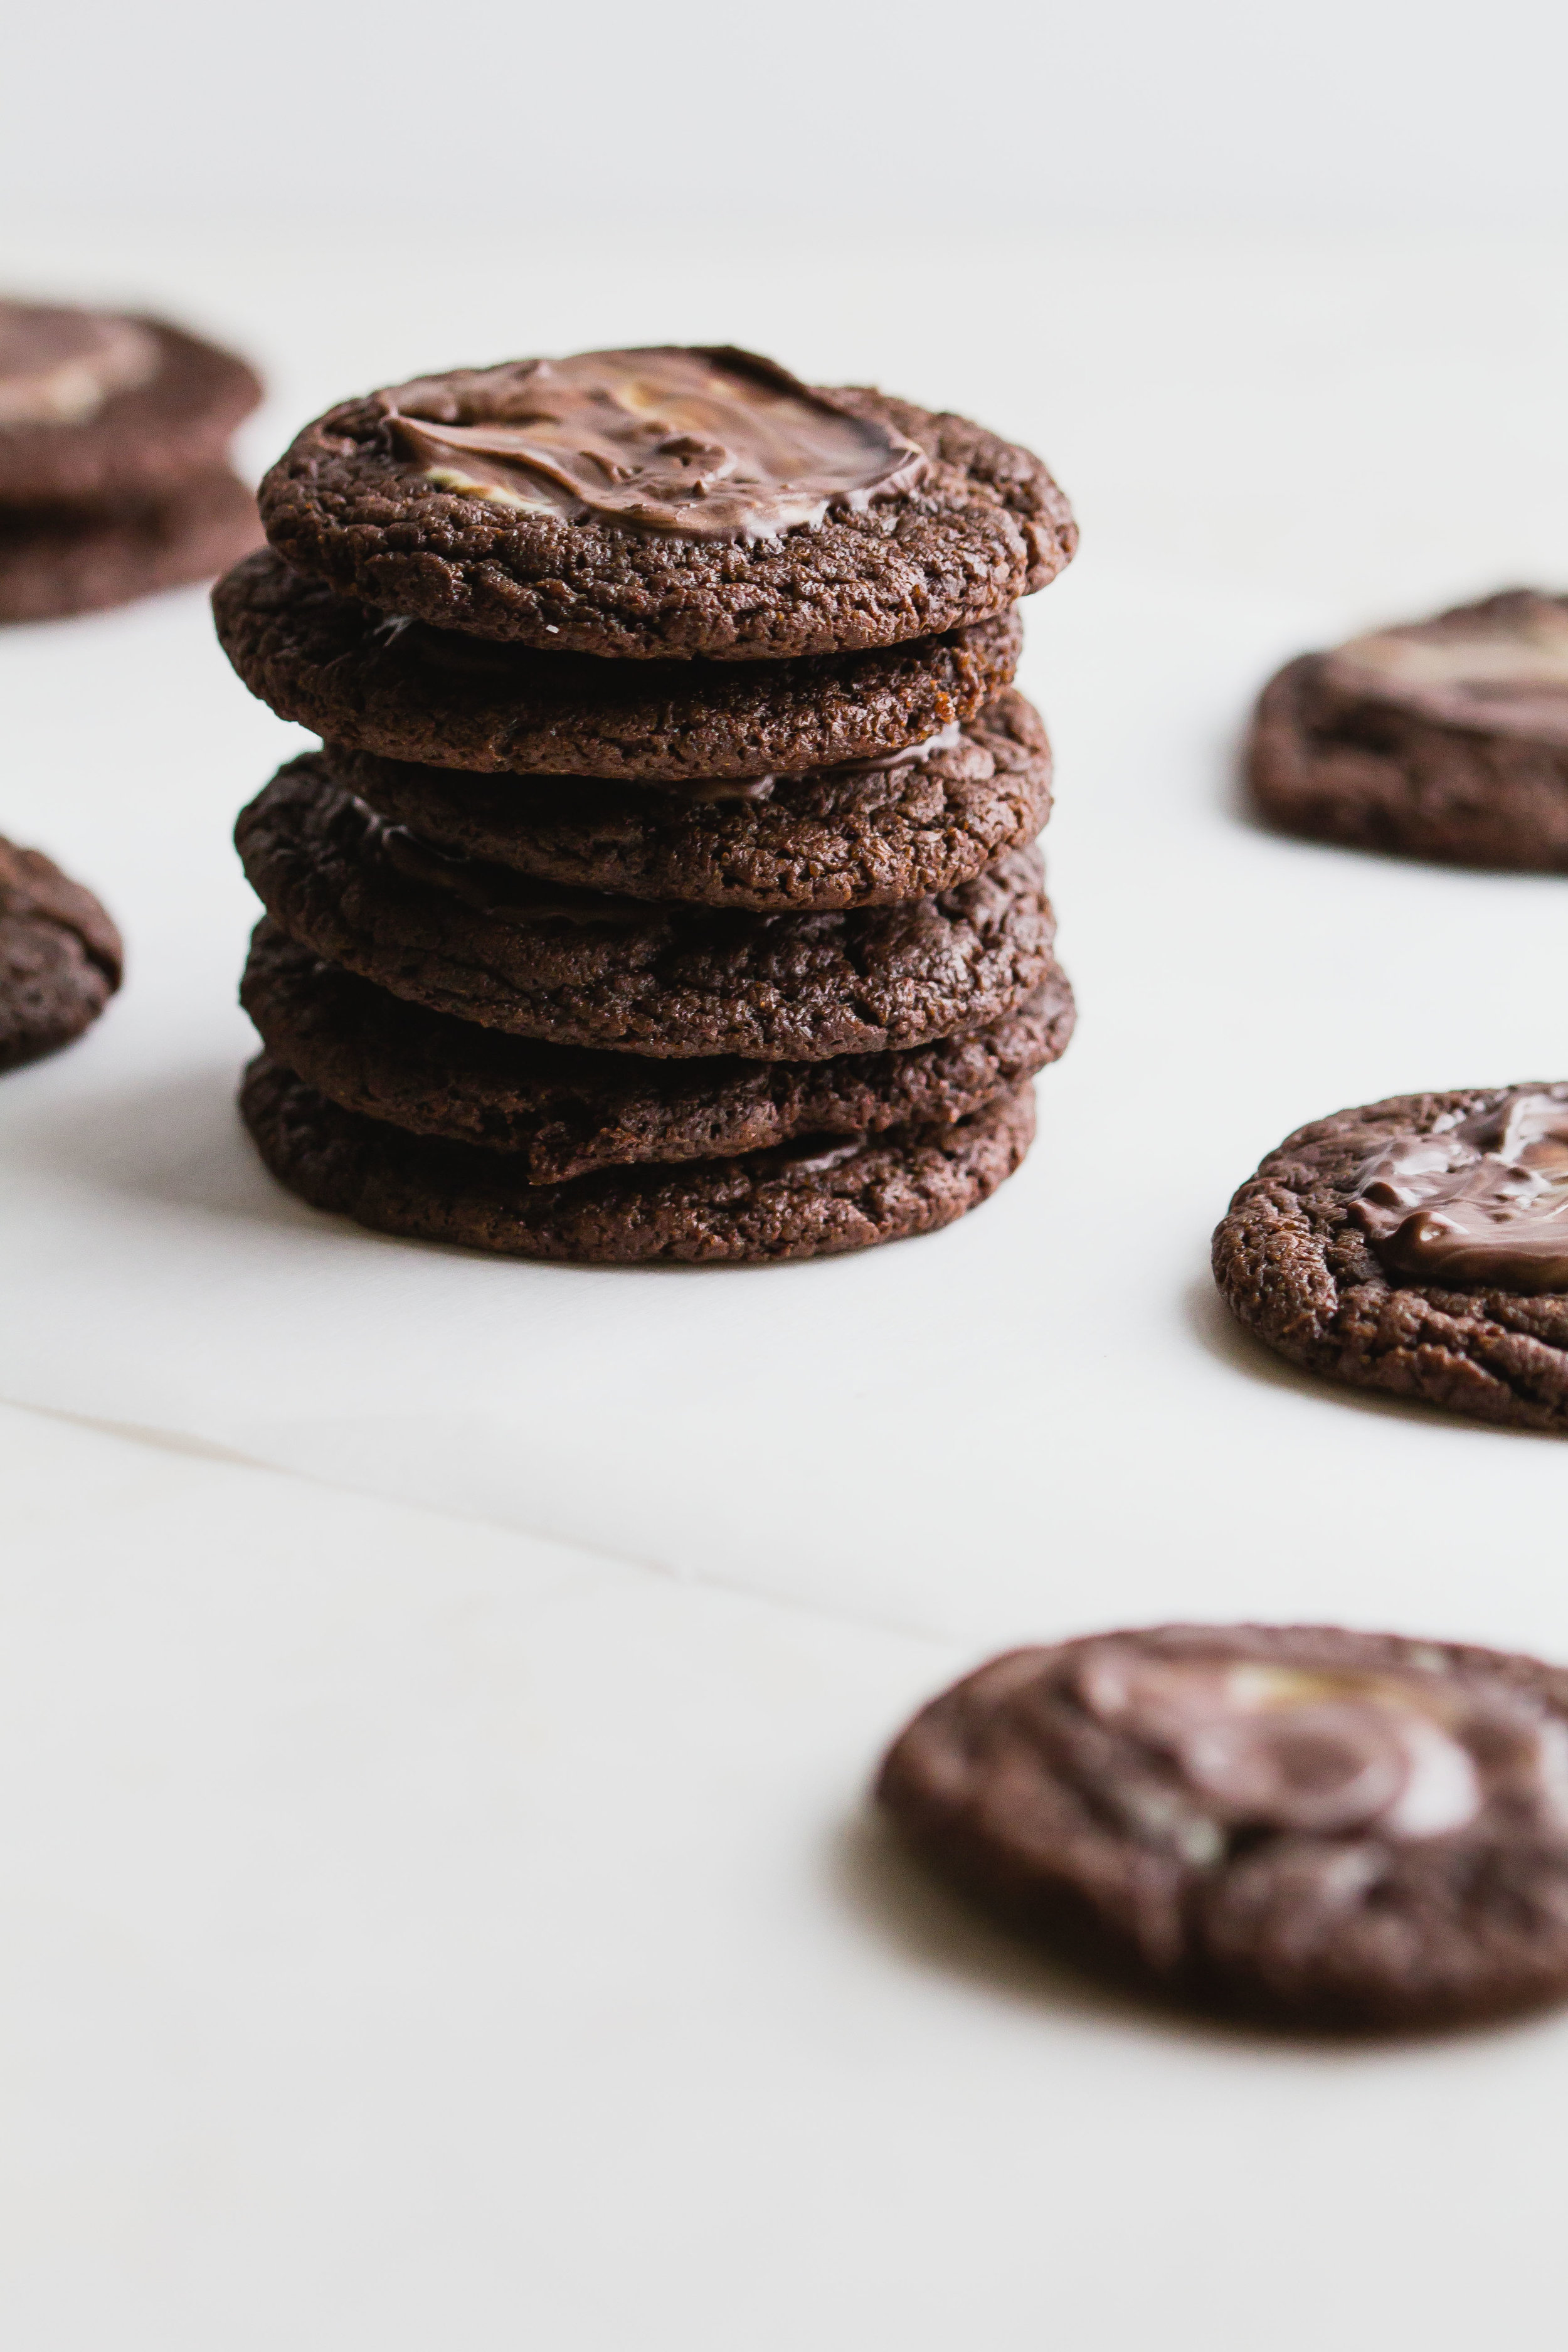 Andes Chocolate Mint Christmas Cookies | Sarah J. Hauser